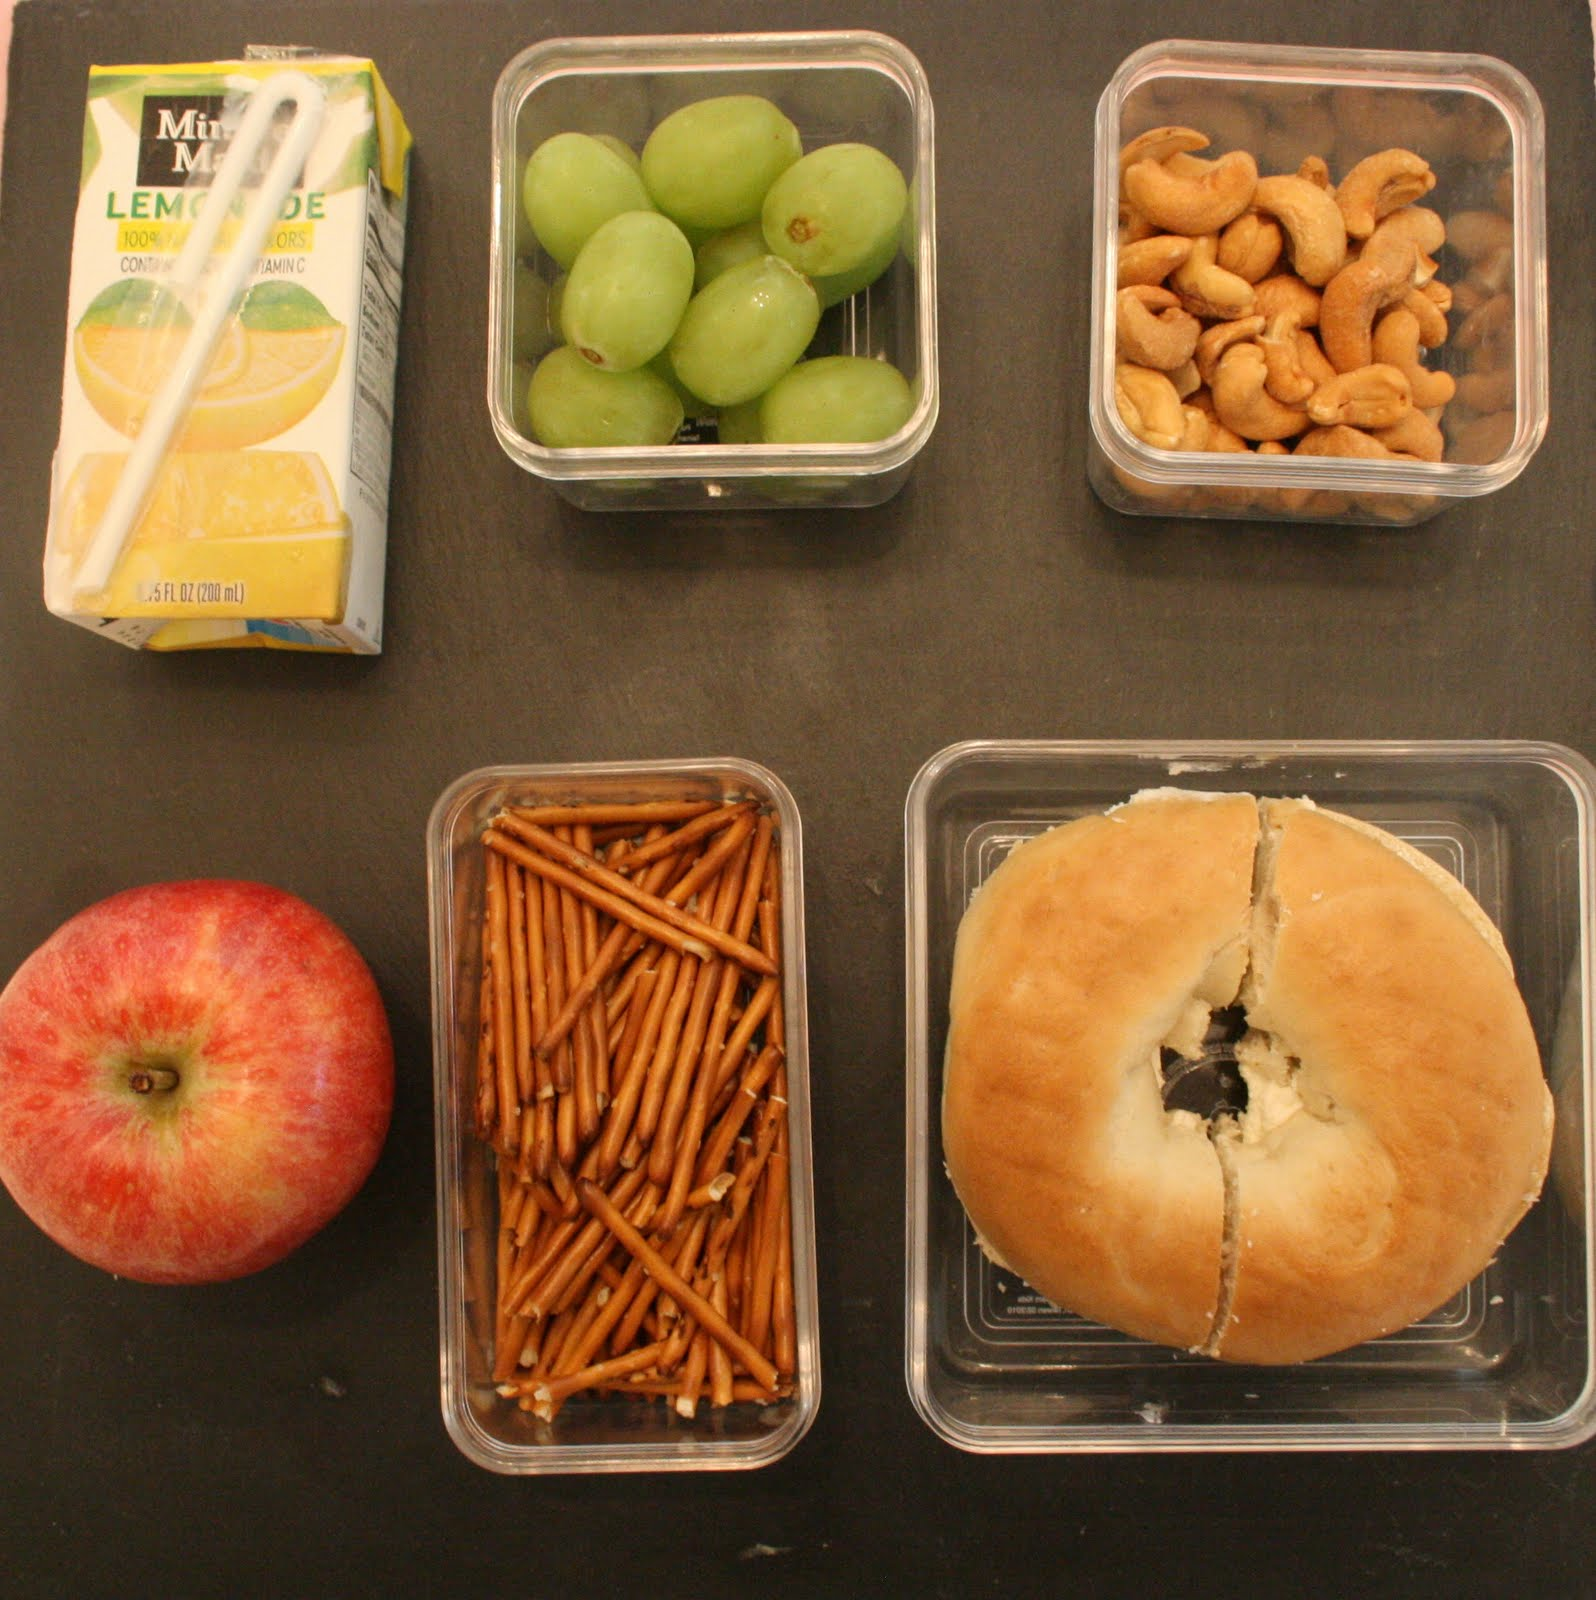 Lunch Box Bento box lunch ideas your kids will love Healthy Lunch Ideas Over 50 Healthy Work Lunchbox Ideas 50 healthy work lunch. Find this Pin and more on Homework help by Heidi Hudson. Dont let the early morning grind get in the way of a great lunch.